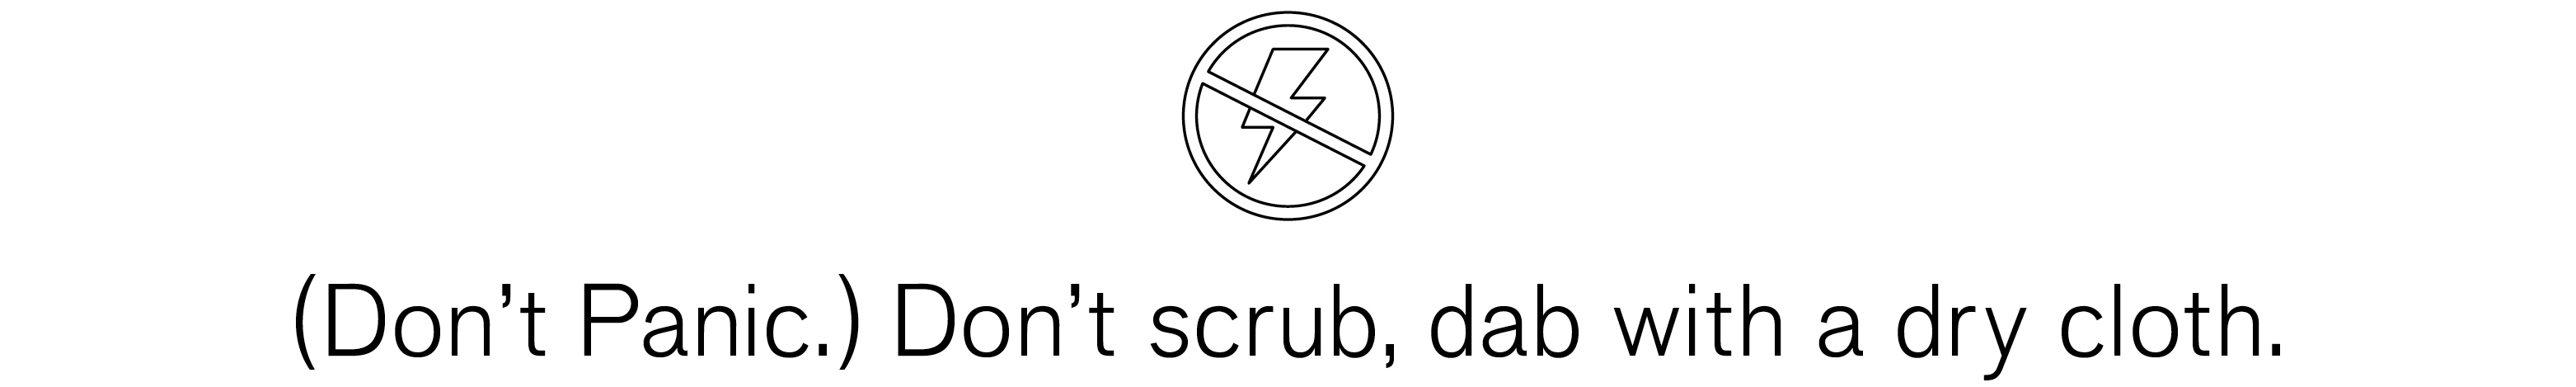 dont-panic-dont-scrub-dab-with-a-dry-cloth